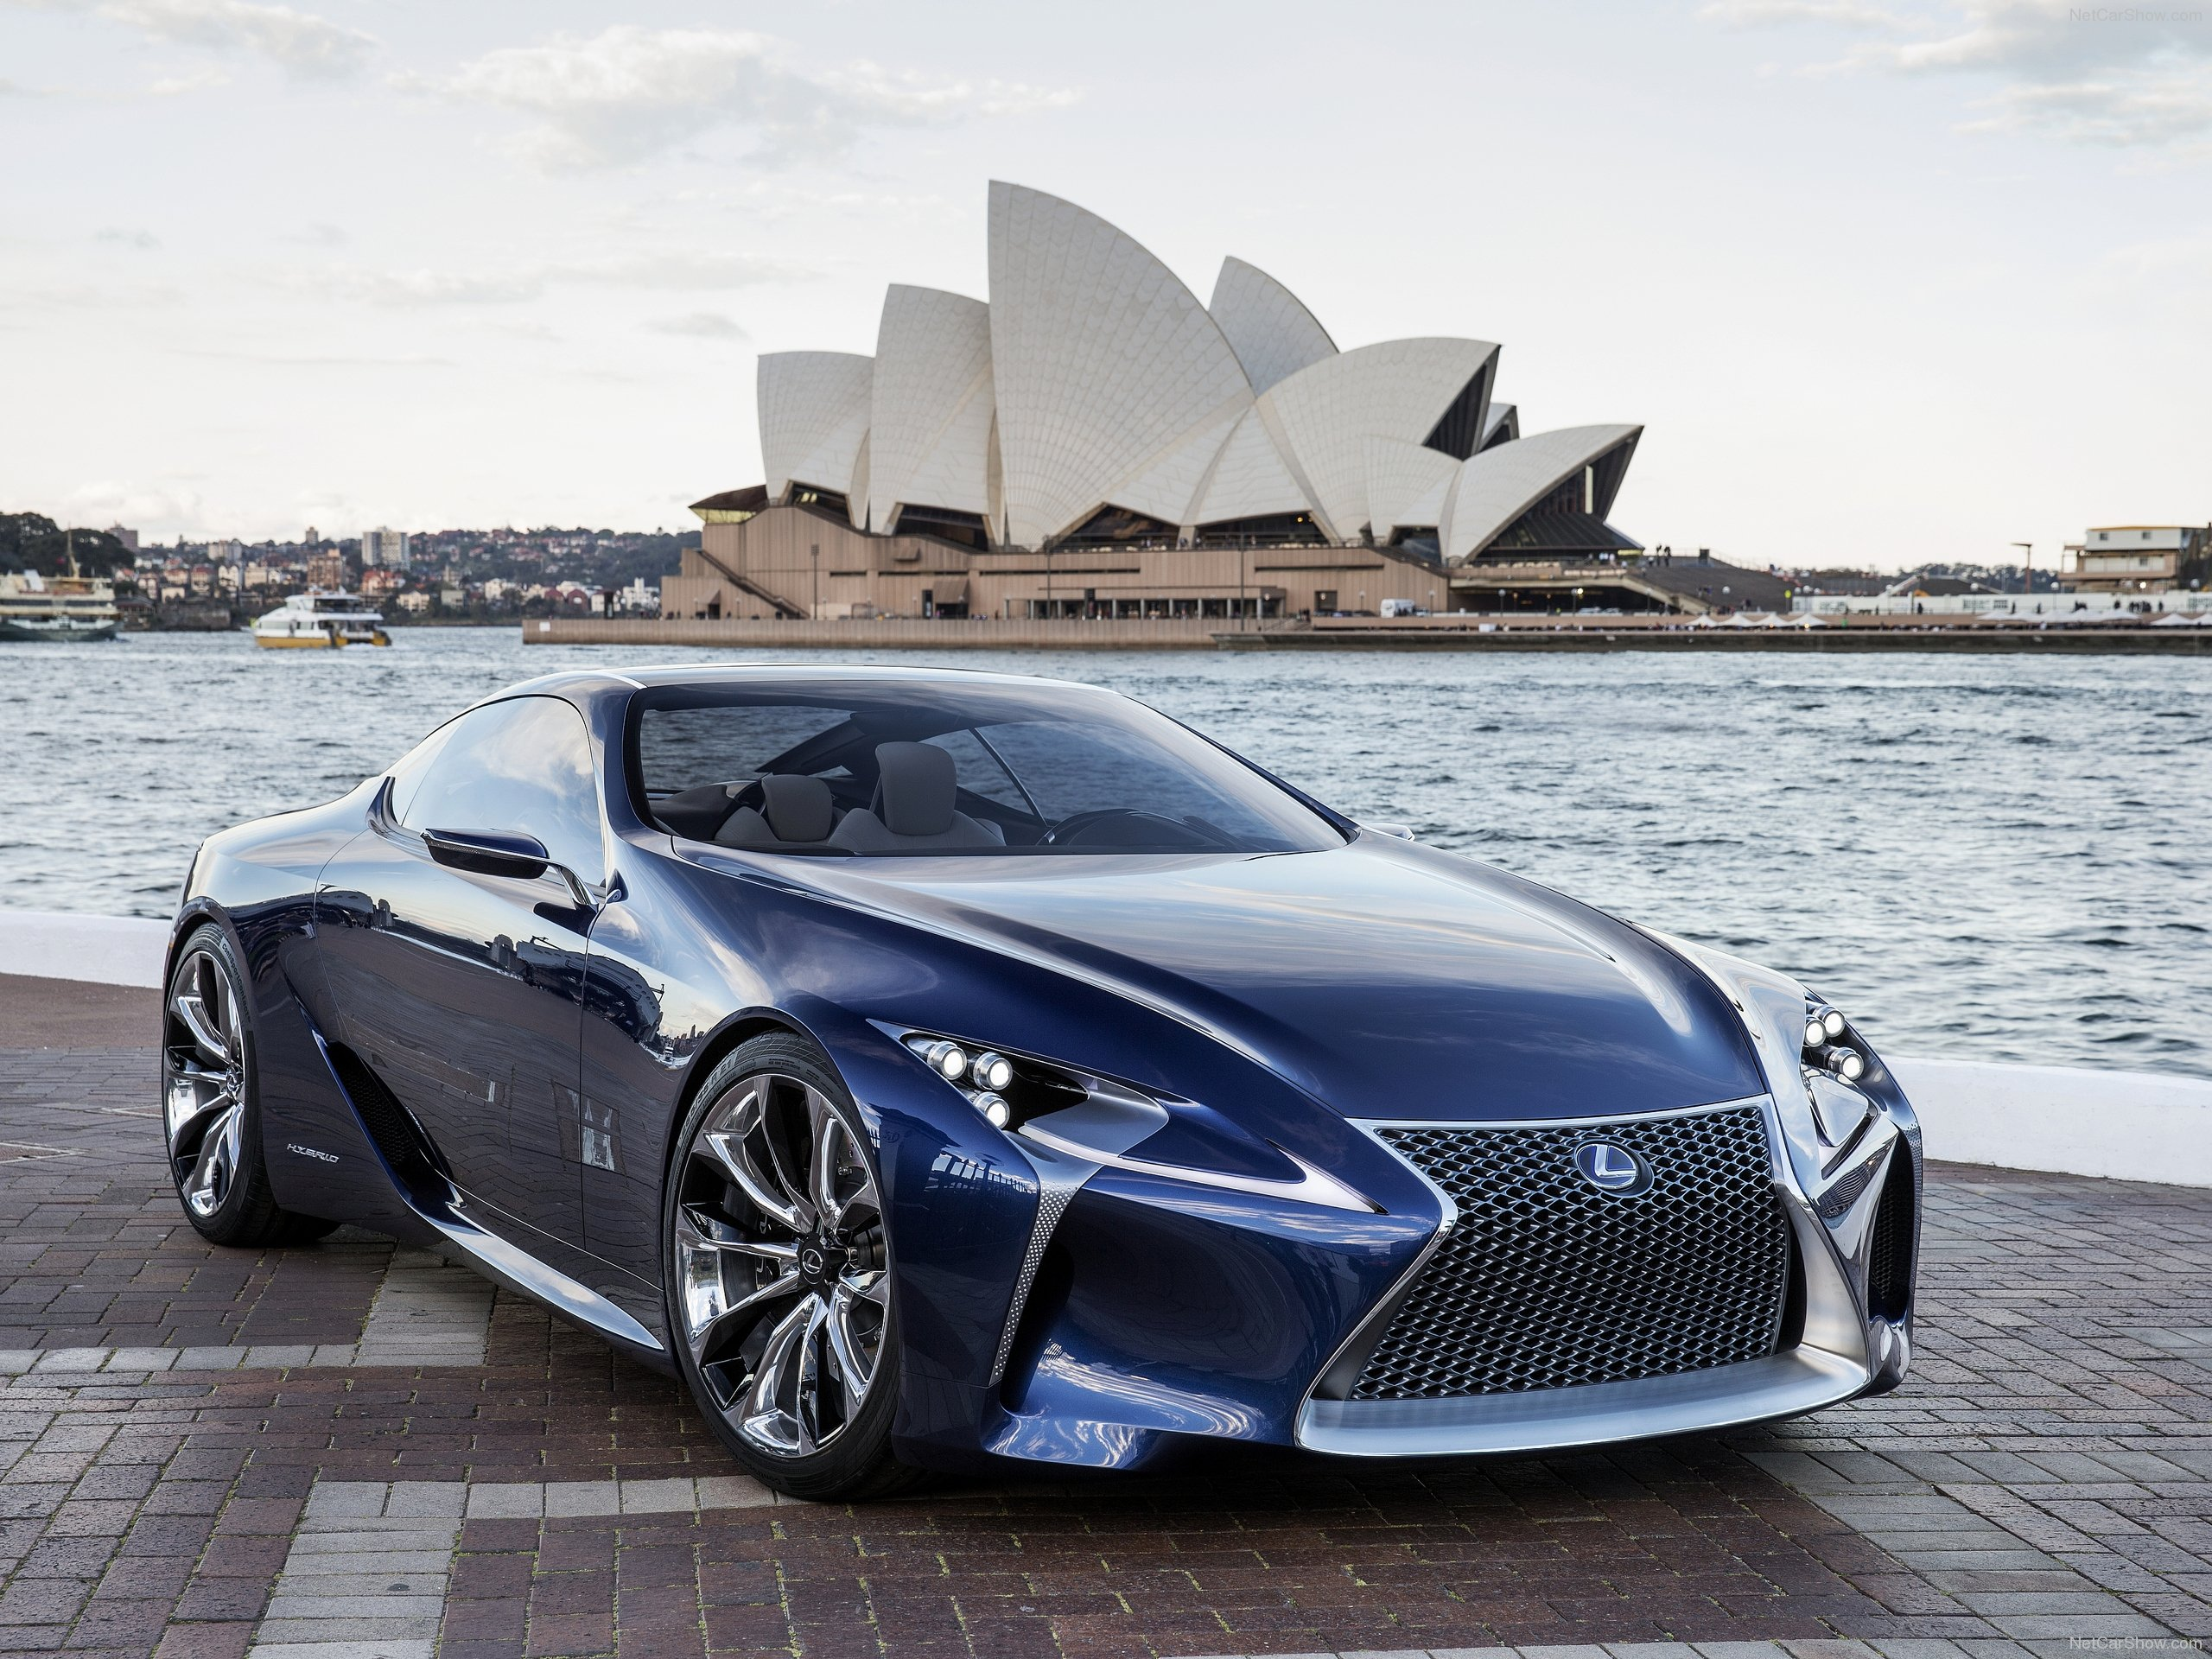 Blue Lexus in Sydney 453.65 Kb